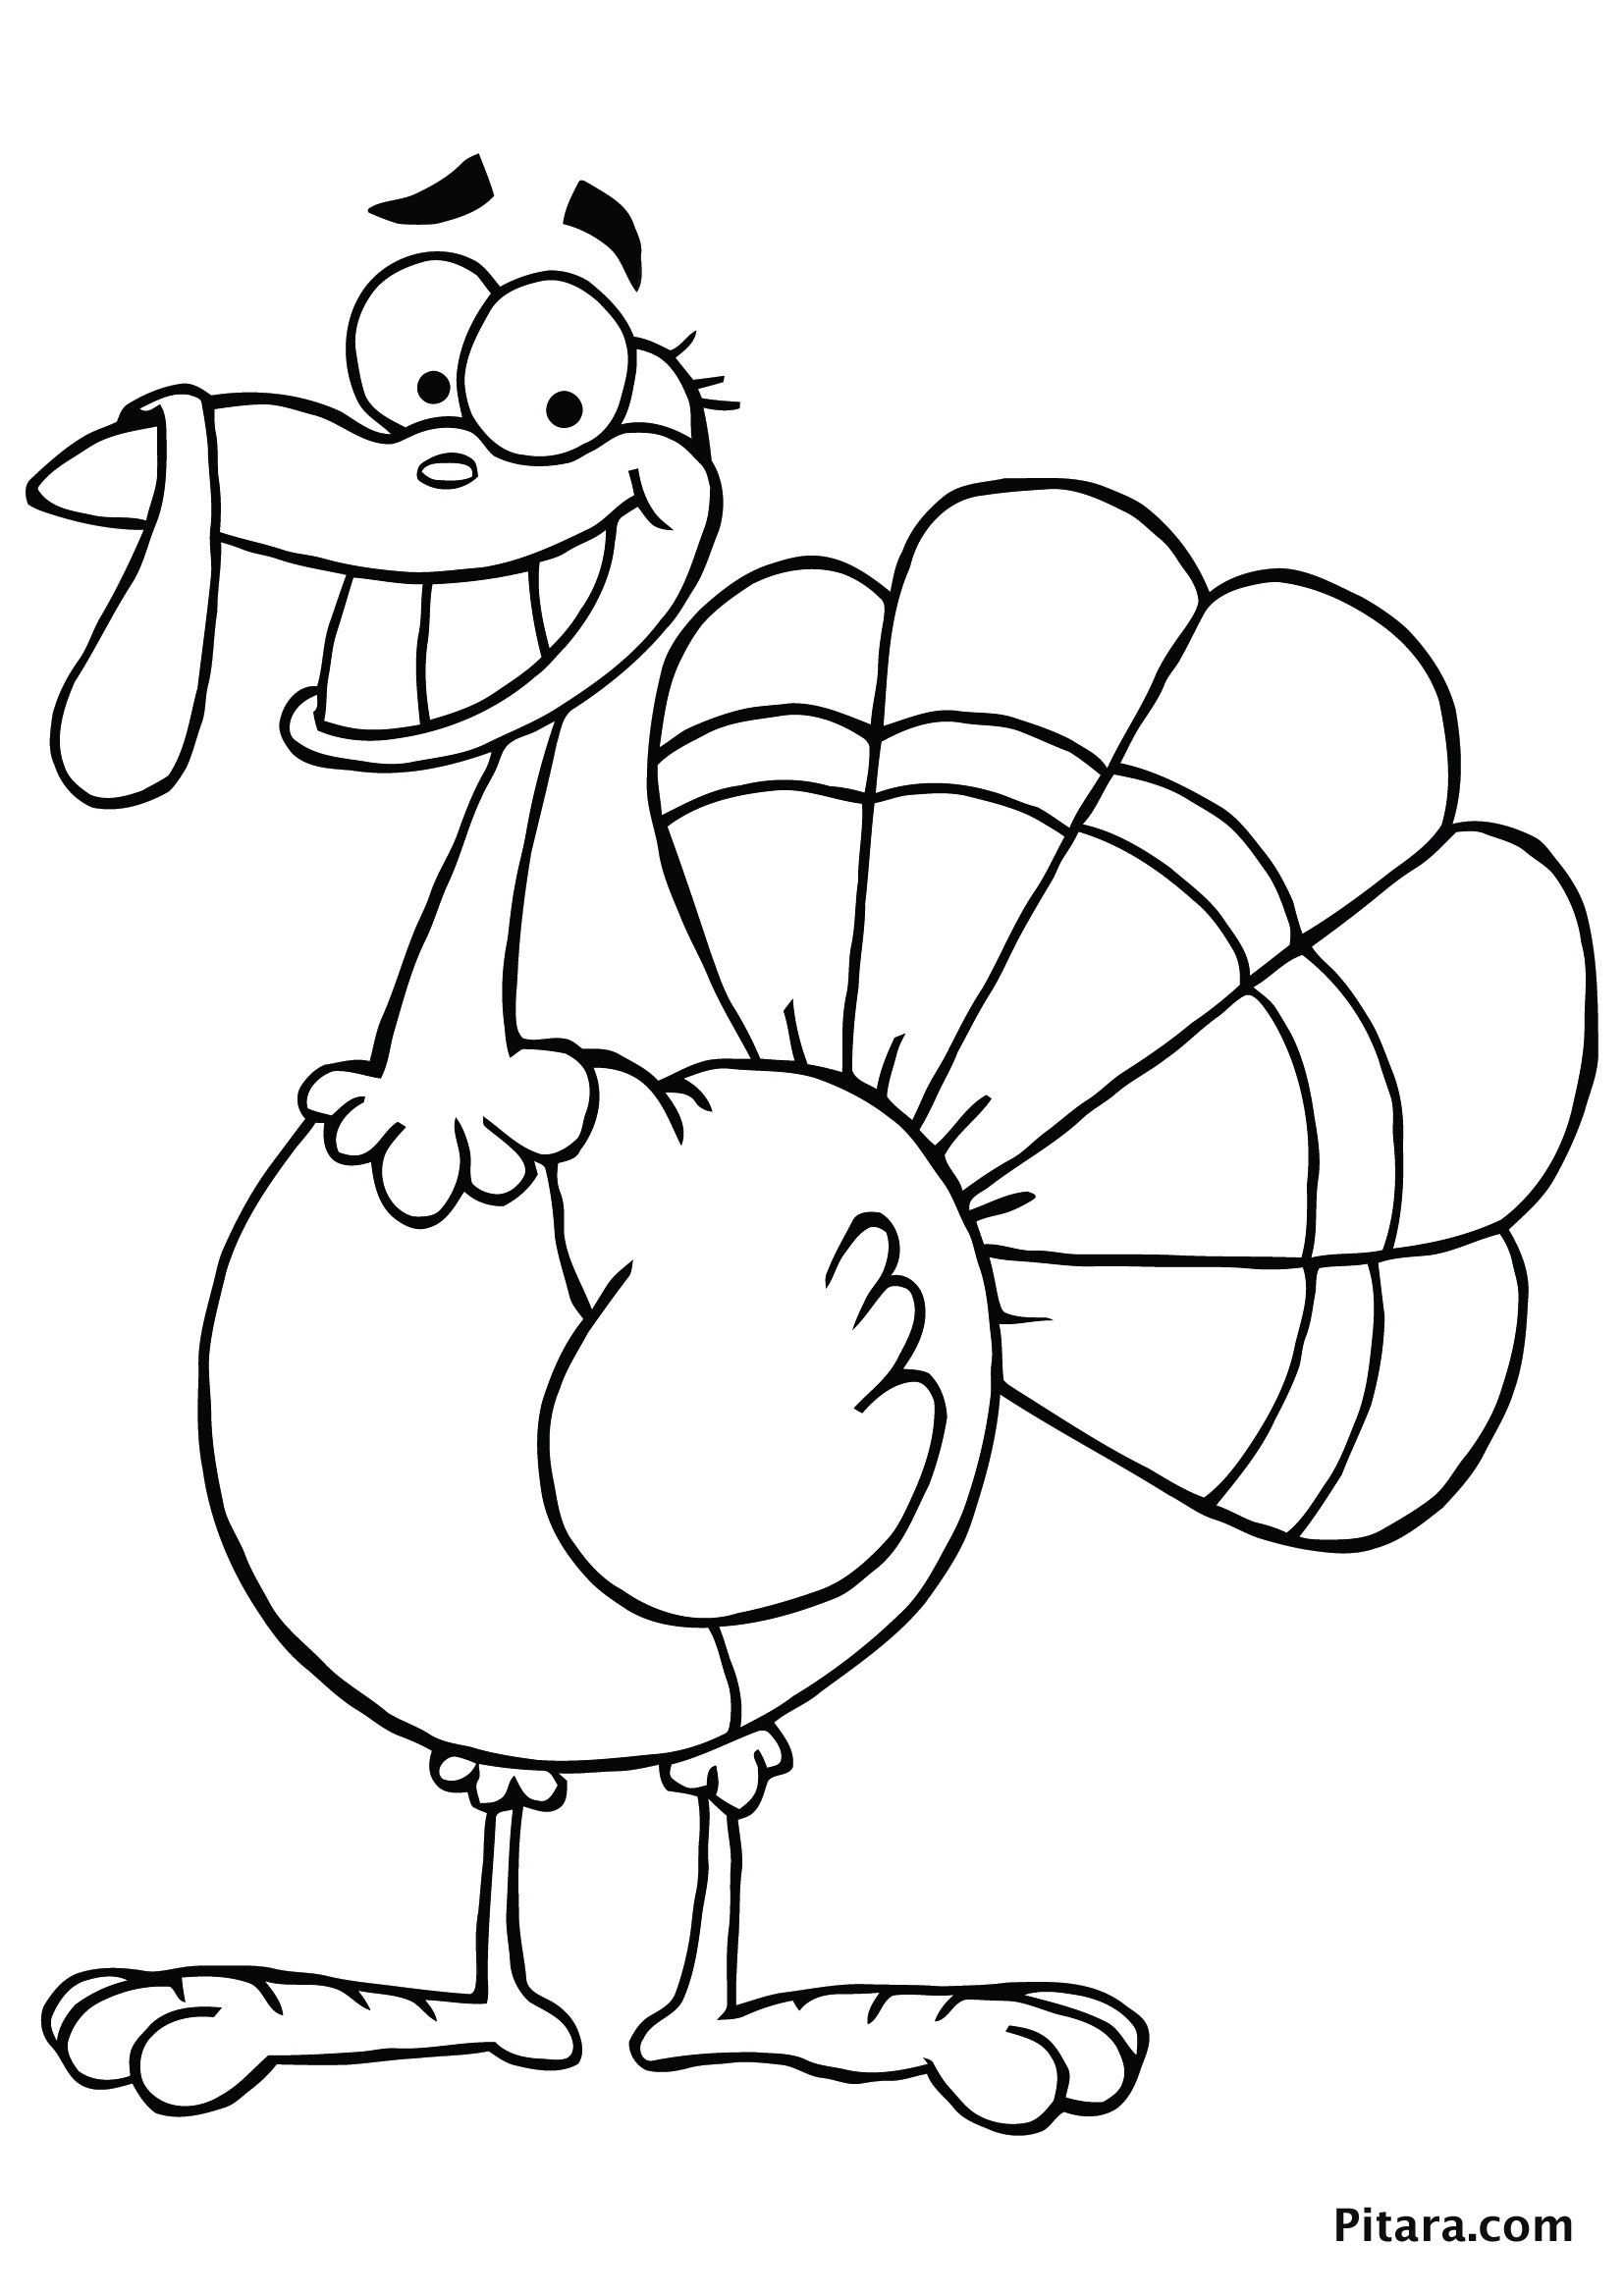 Coloring Book Pages Of Turkeys  Turkey Coloring Pages for Kids